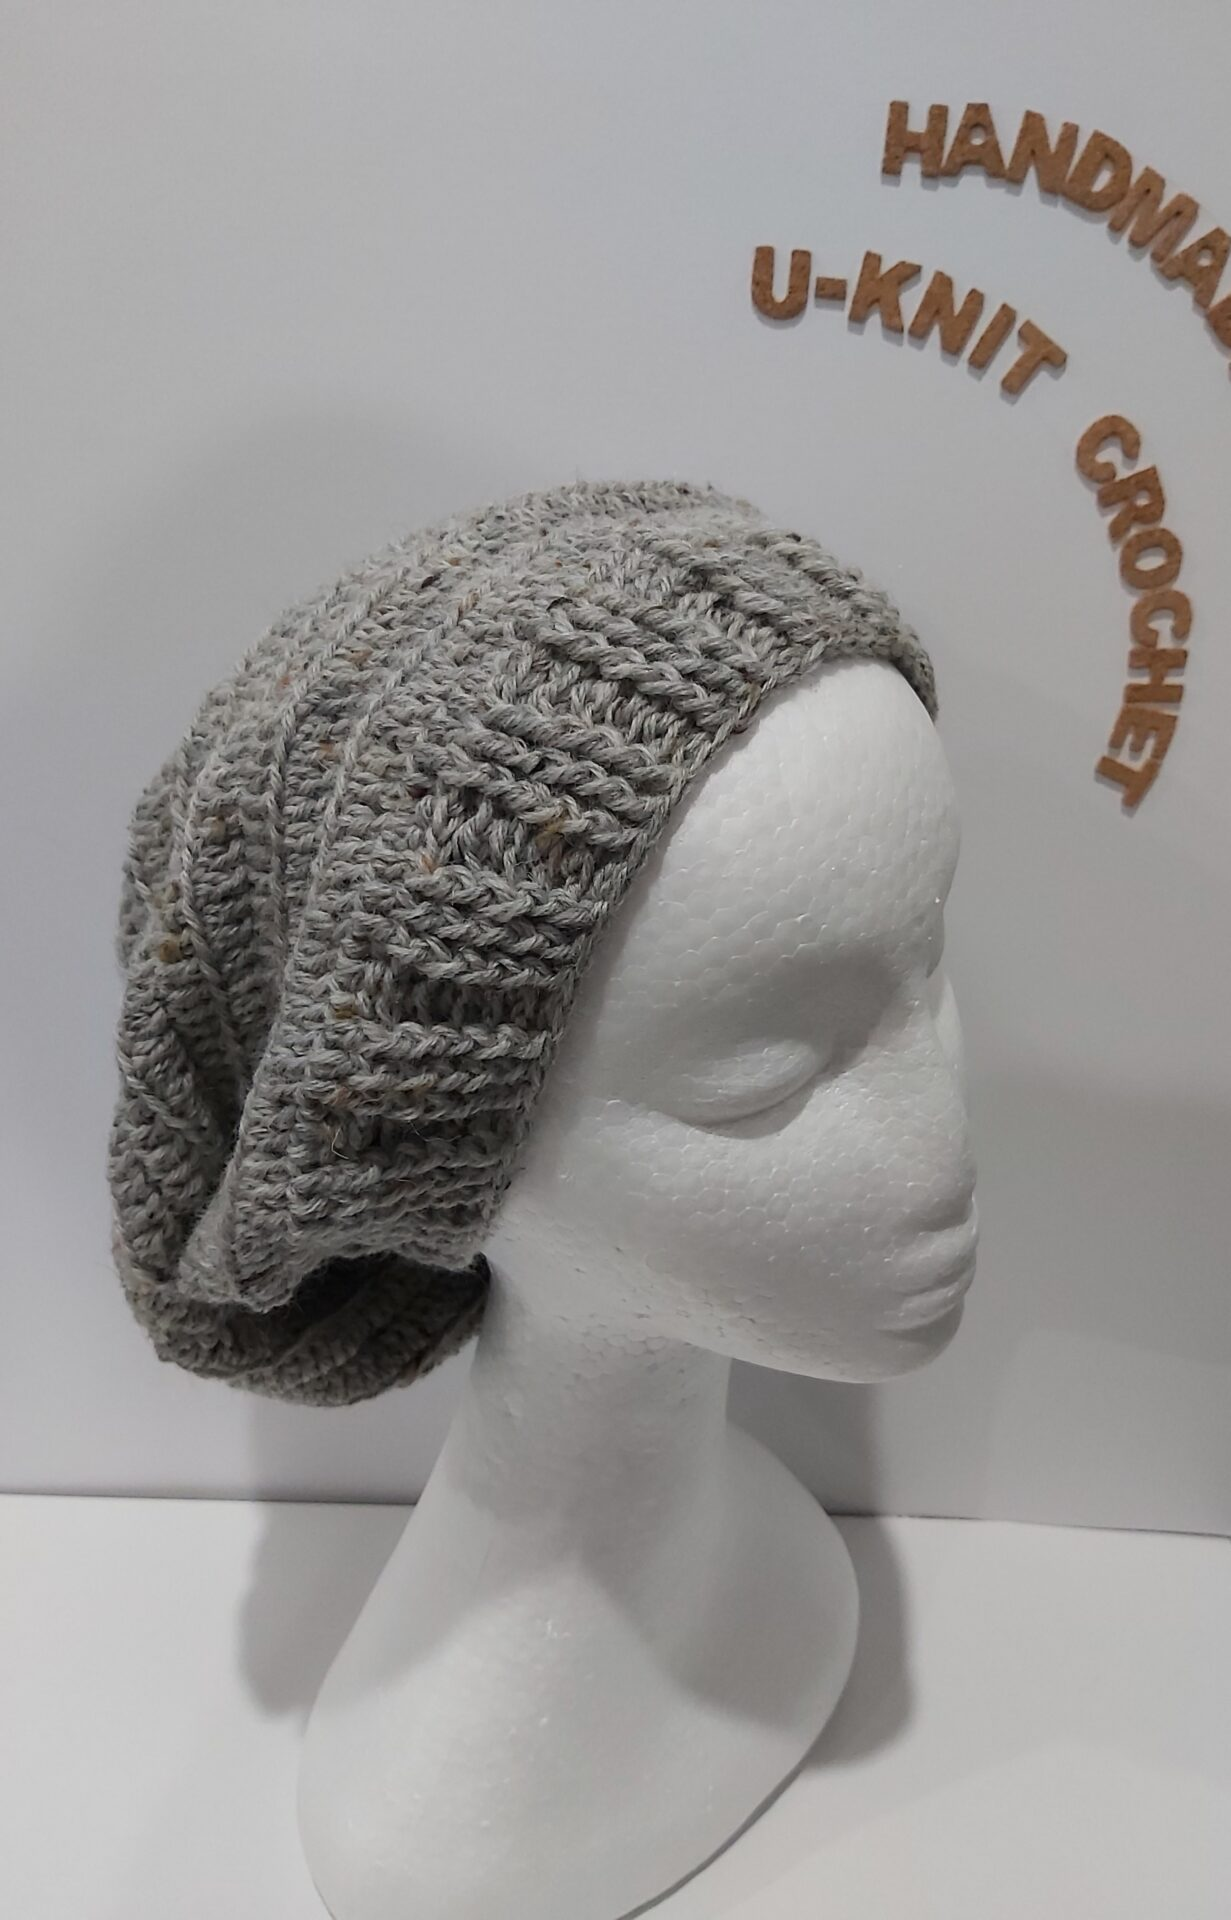 Grey Slouchy Hat Handmade By U-Knit Crochet